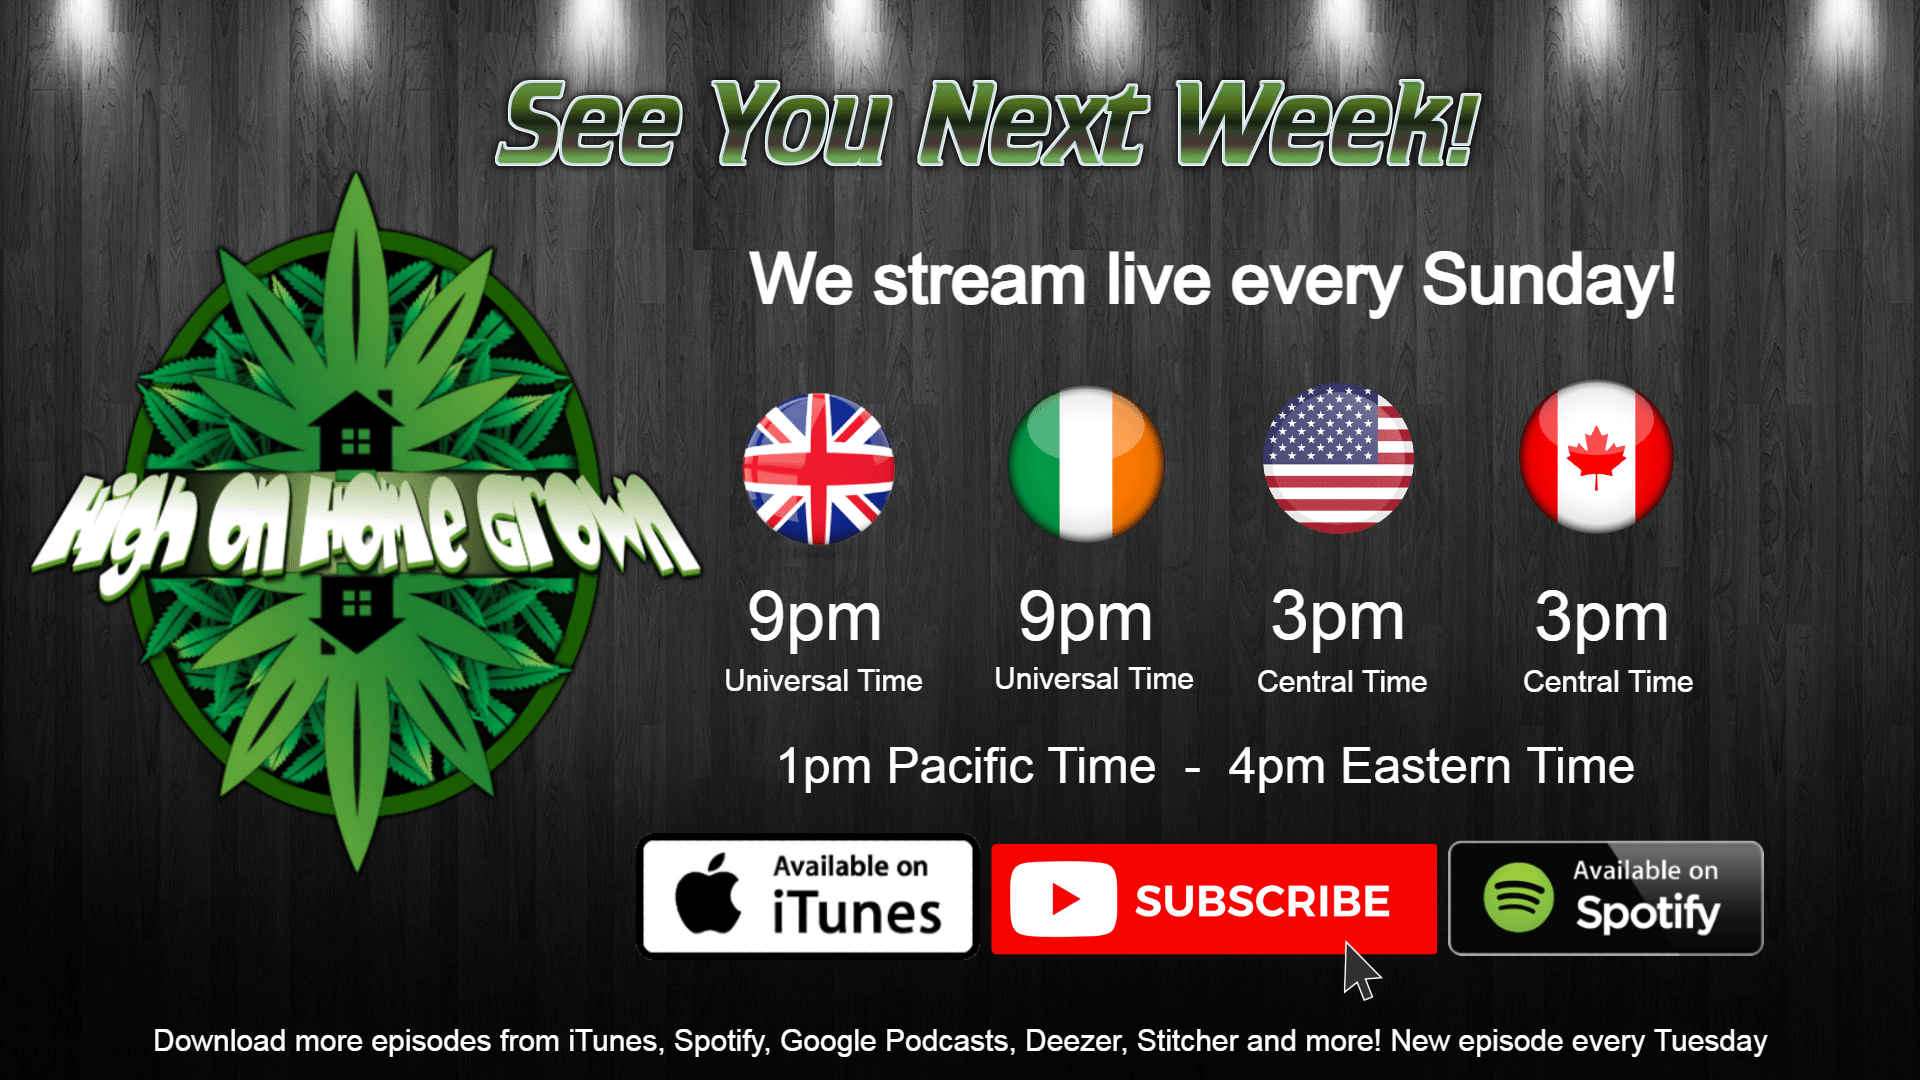 High on Home Grown, Cannabis podcast, Stoners podcast, show start times,